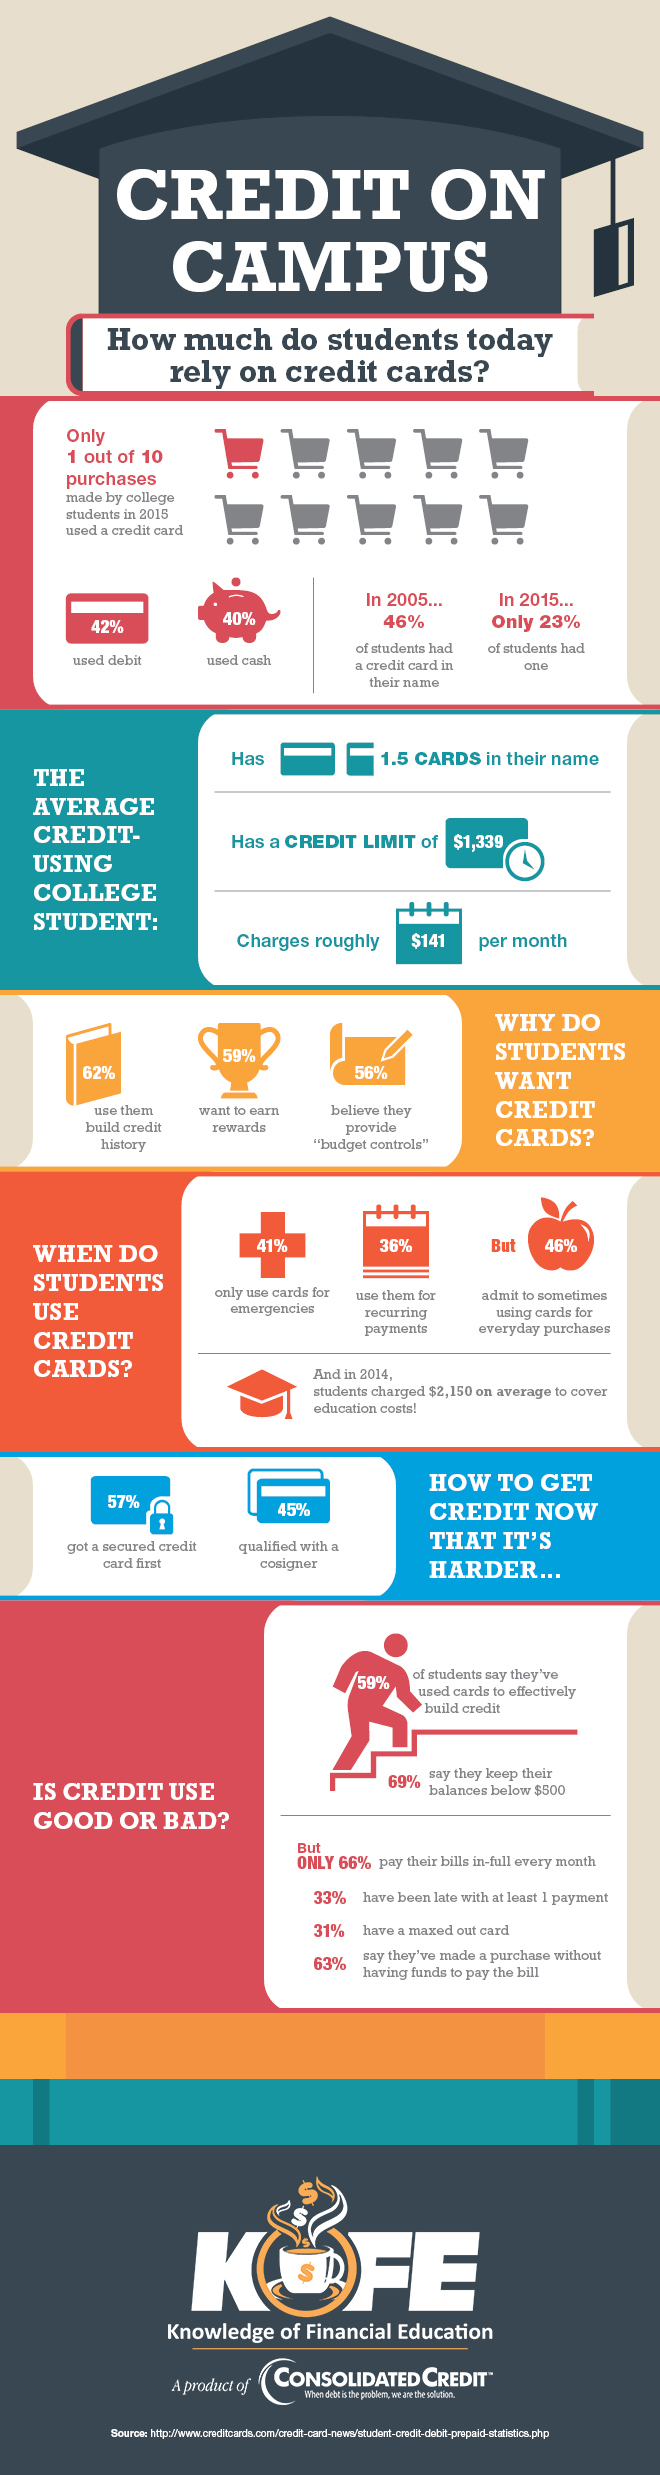 Credit on Campus infographic